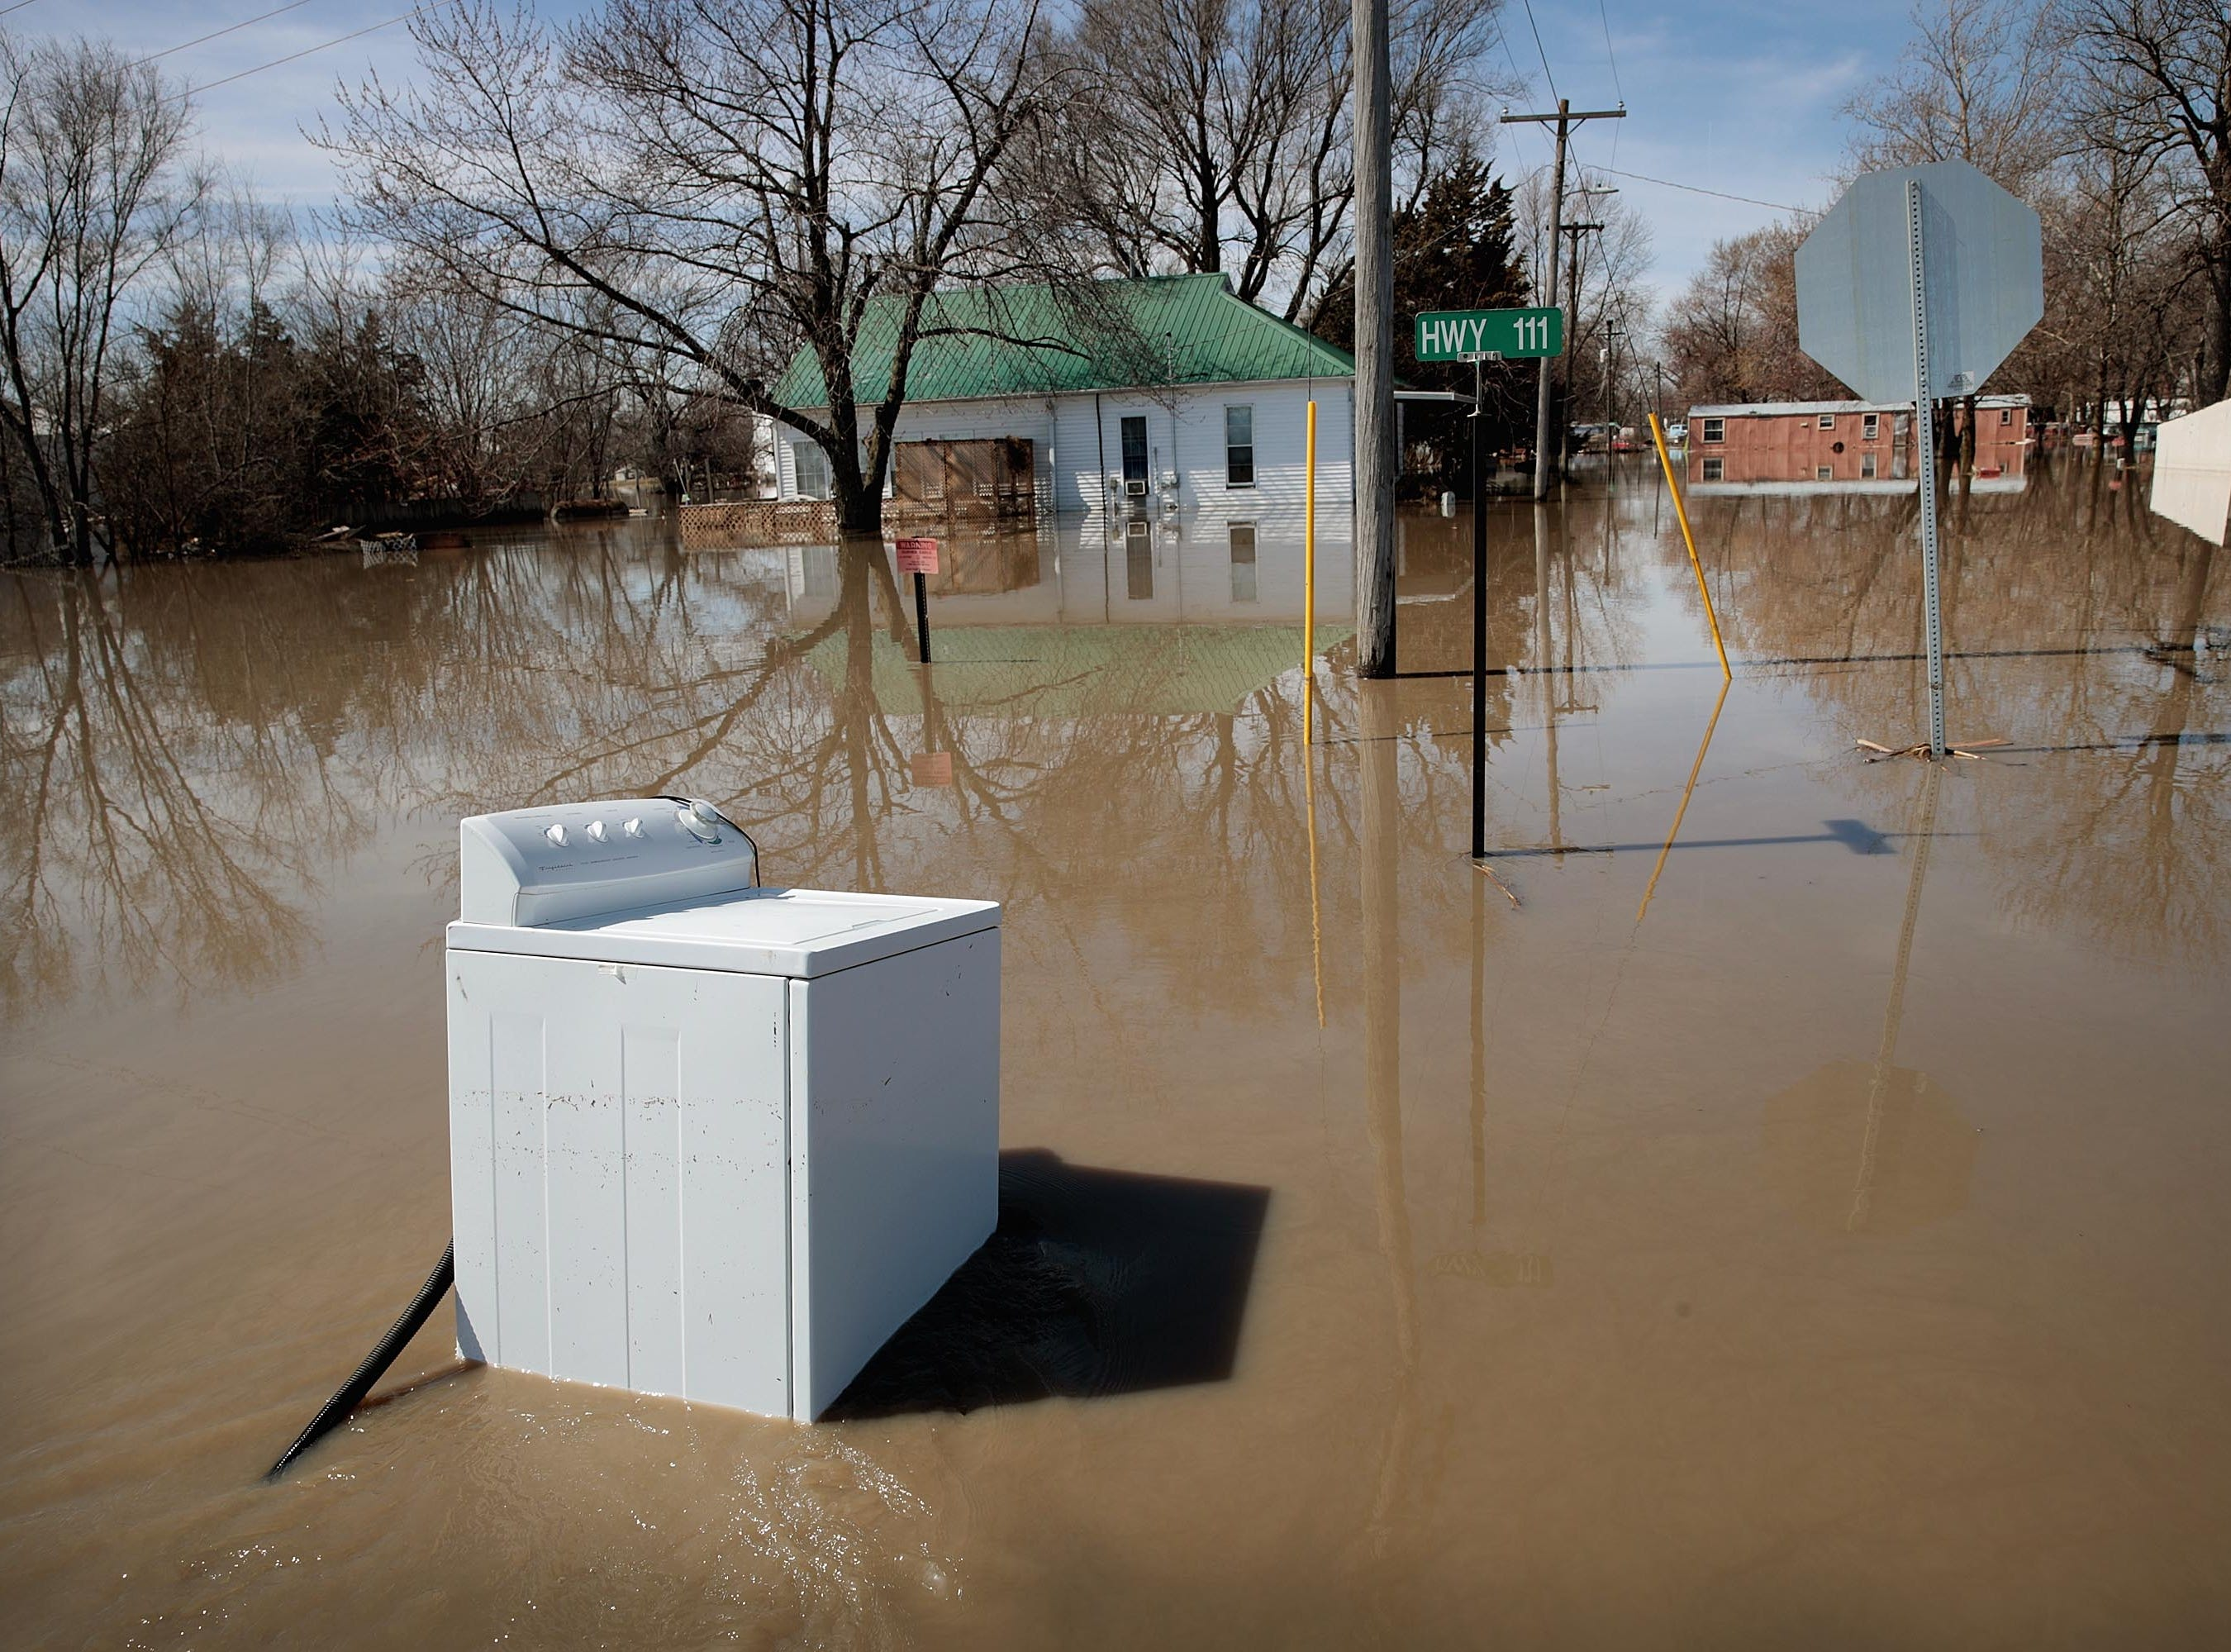 Floodwater covers the towns streets on March 22, 2019 in Craig, Mo.